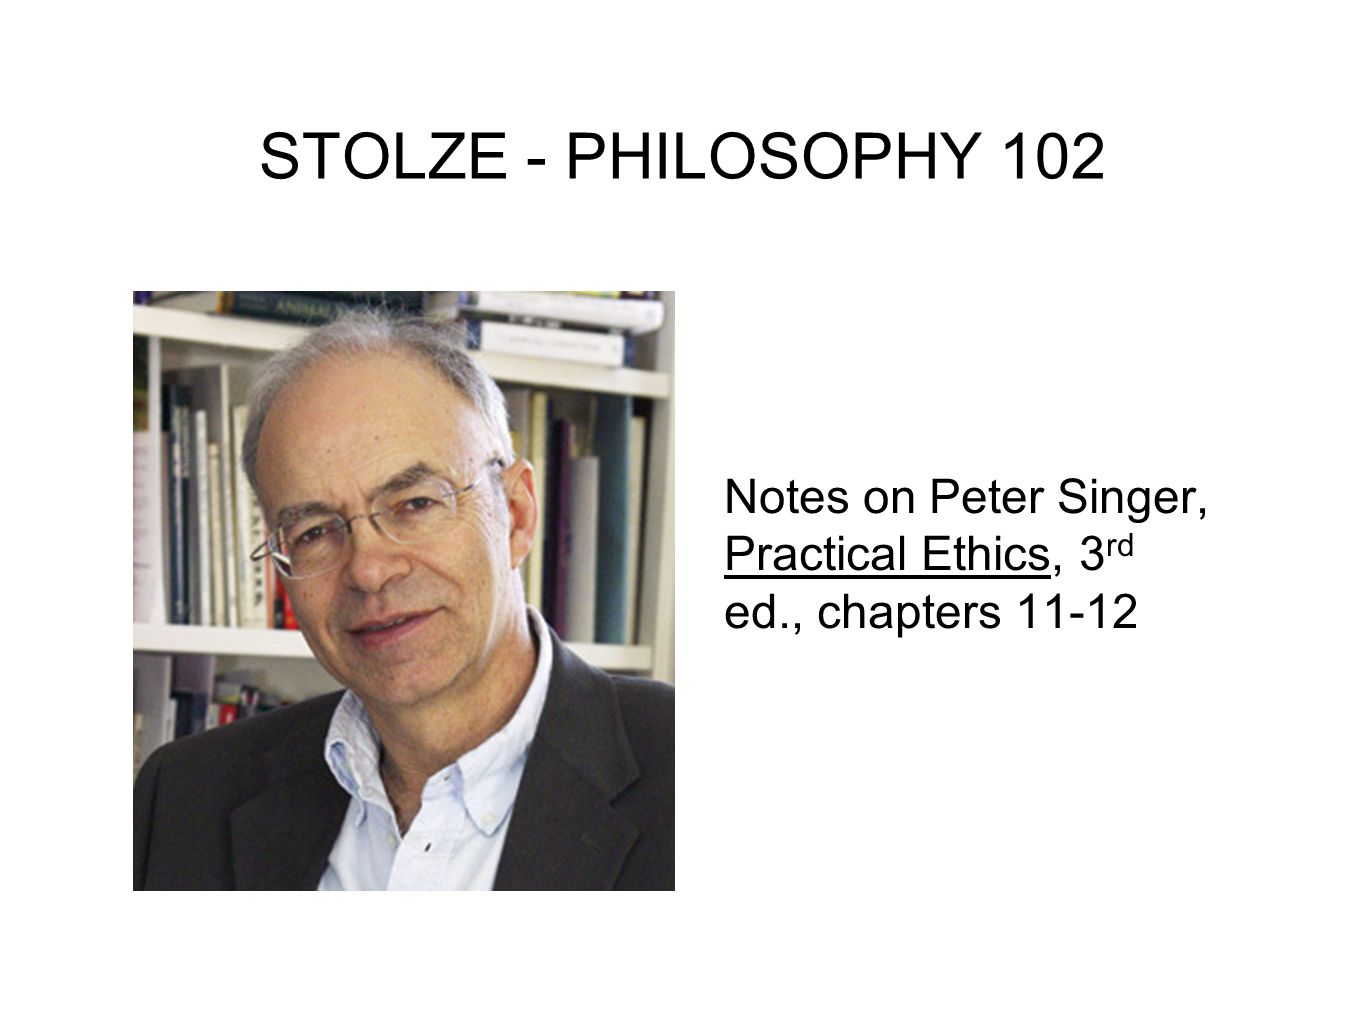 STOLZE - PHILOSOPHY 102 Notes on Peter Singer, Practical Ethics, 3rd ed., chapters 11-12